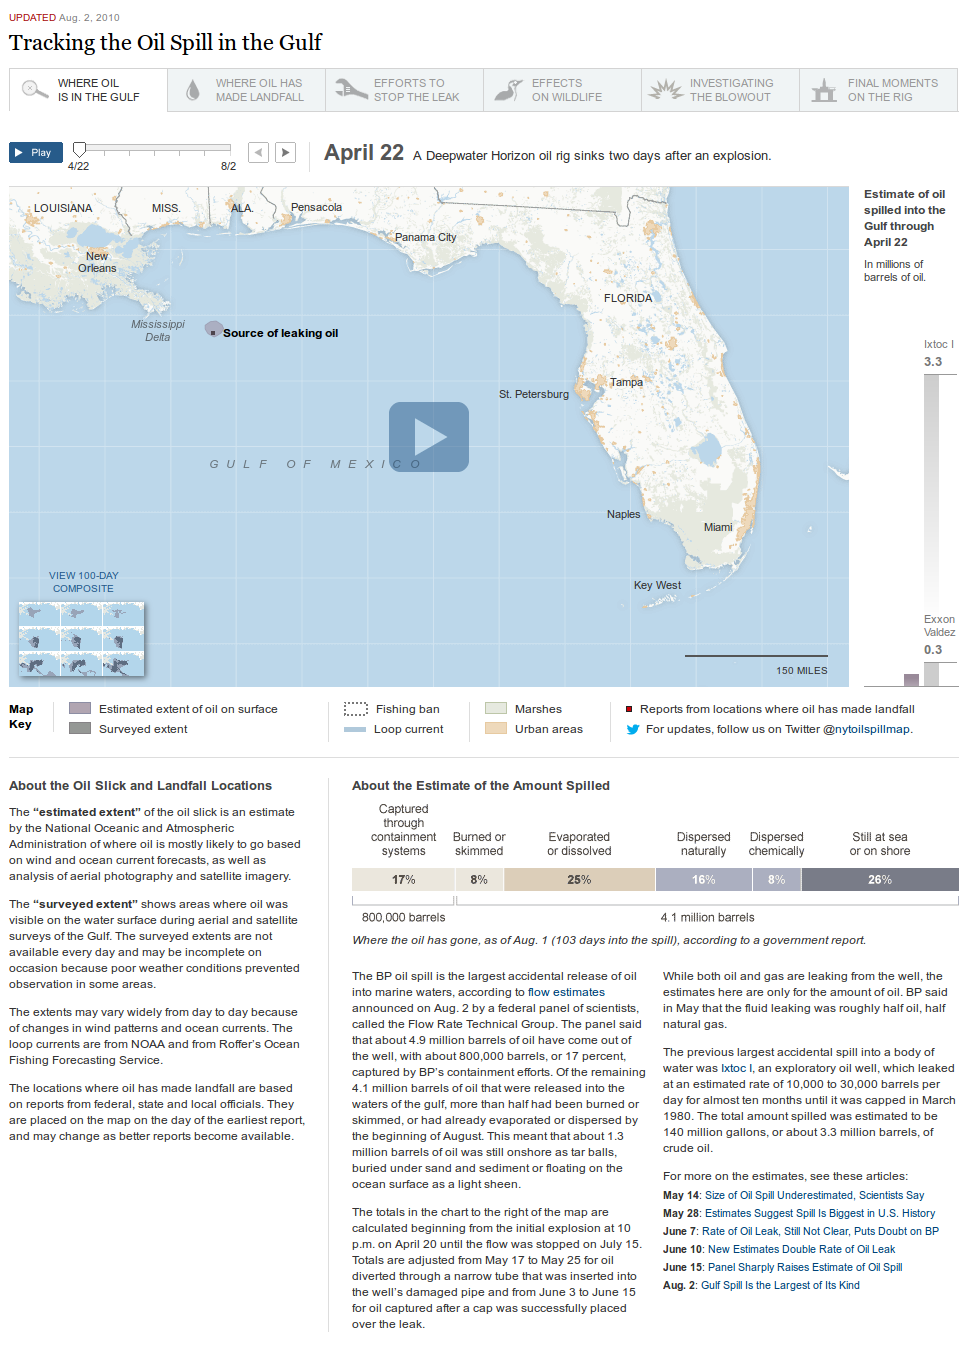 Tracking the Oil Spill in the Gulf